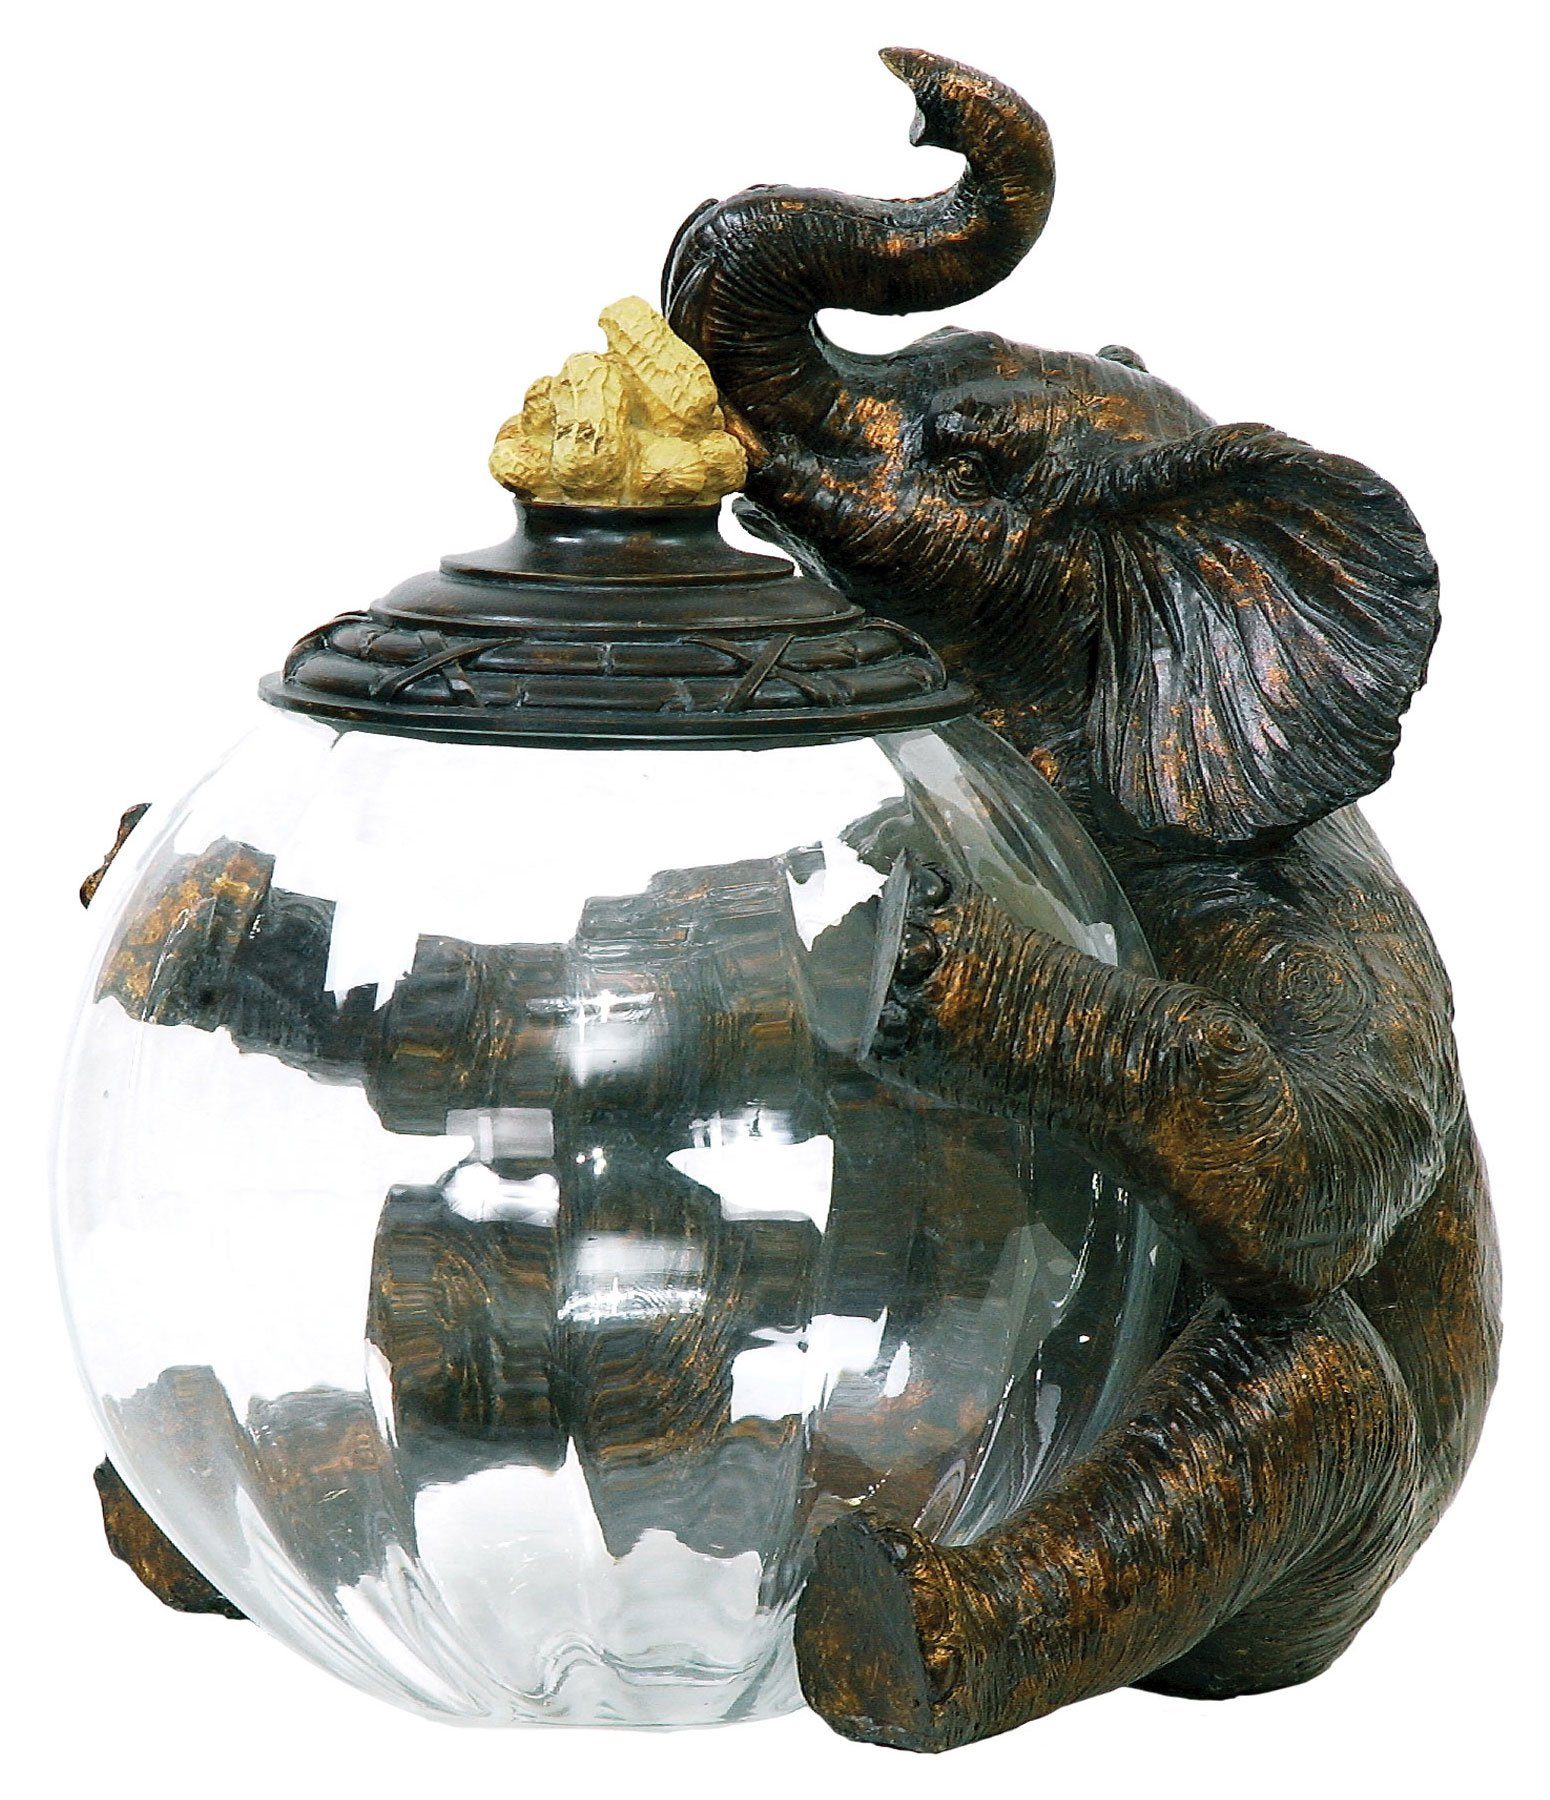 Sterling 91-2264 Composite/Glass Elephant Storage Jar, 9 by 12-Inch by Sterling (Image #1)